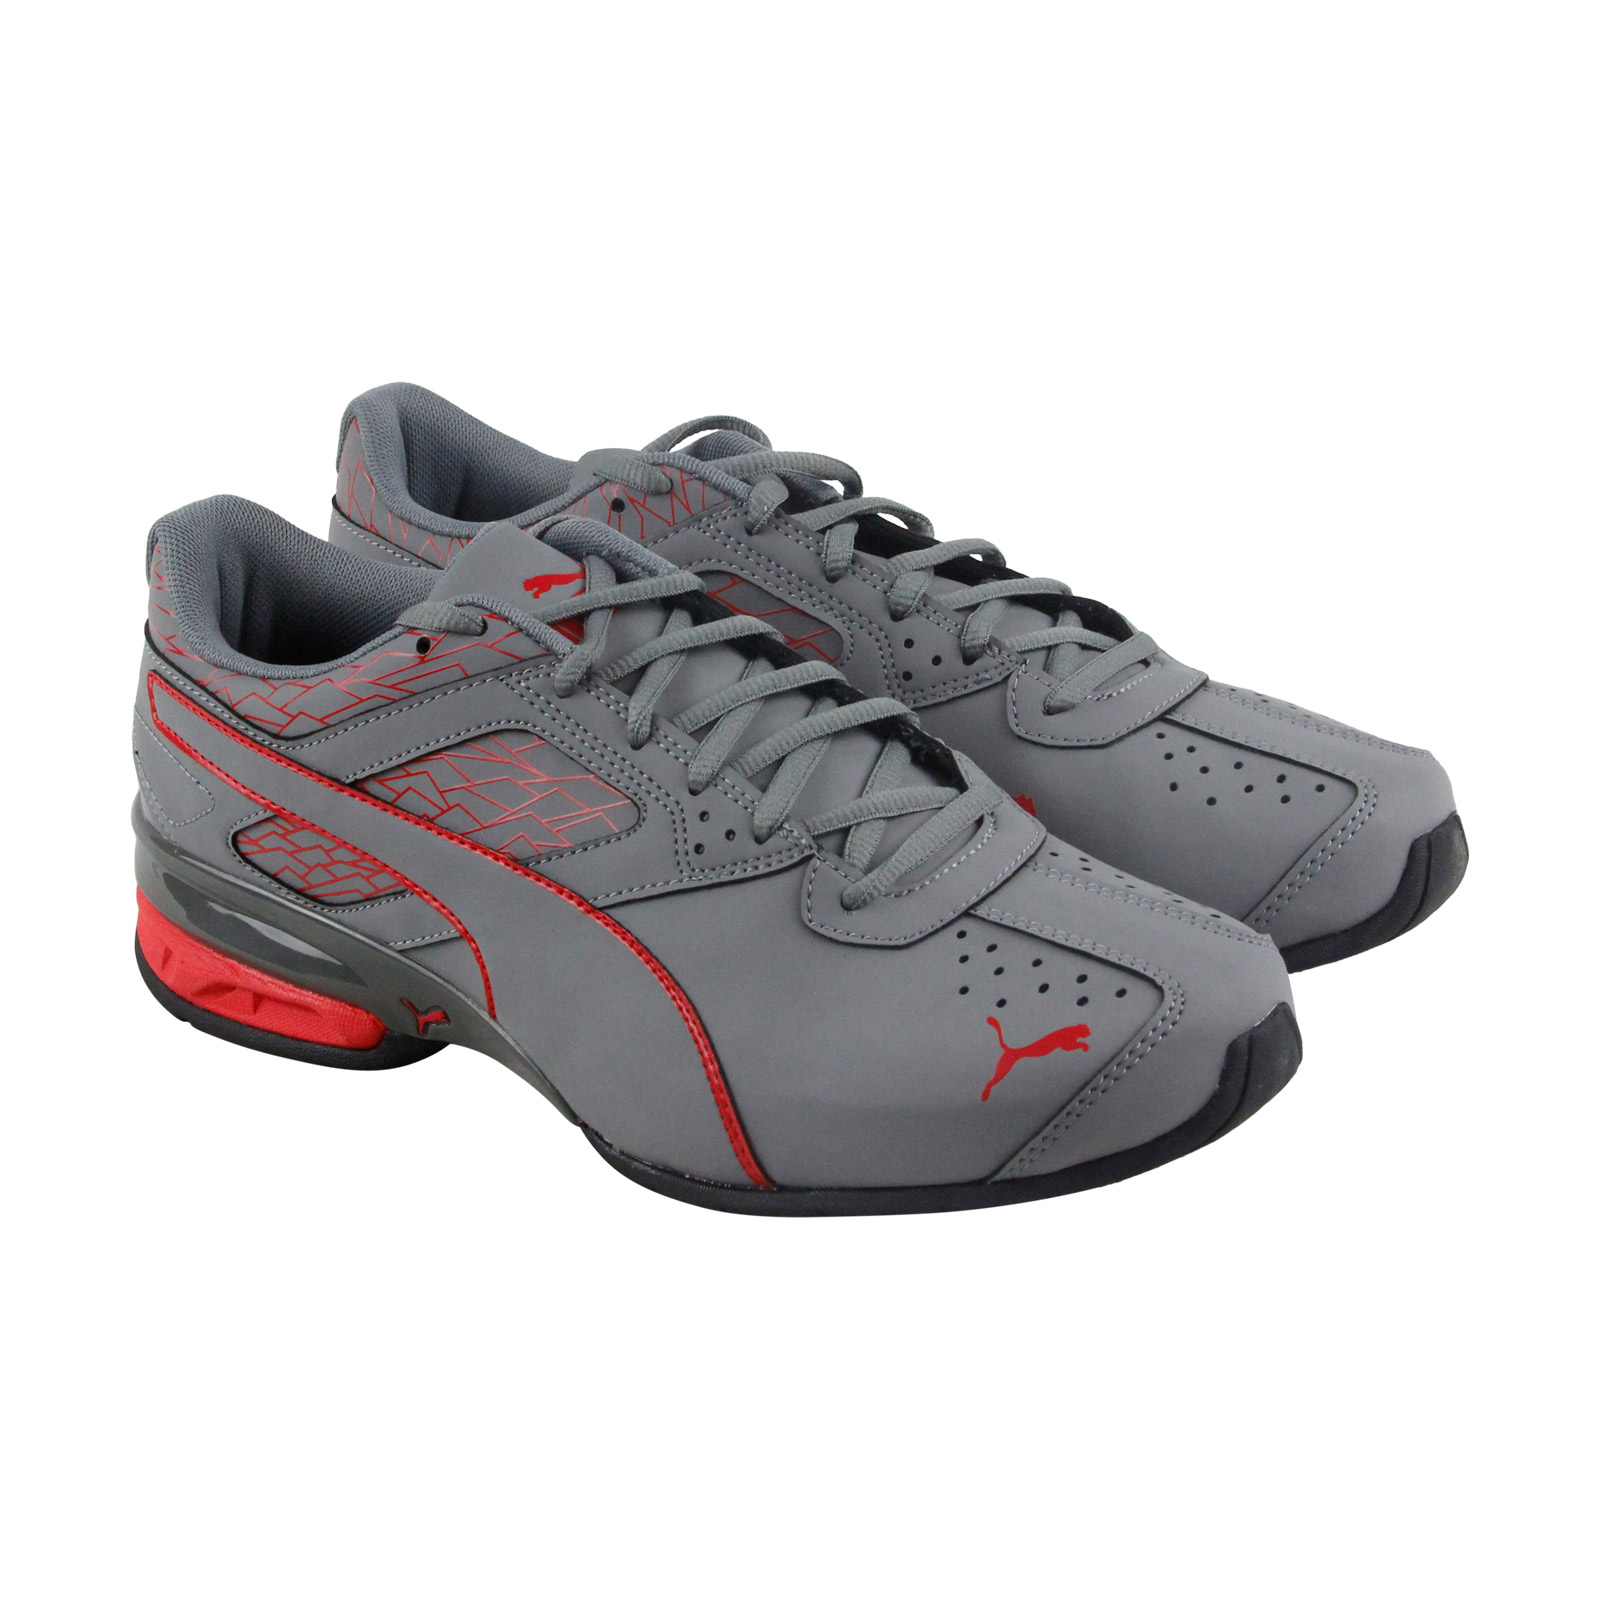 Puma Tazon 6 Fracture Fm Mens Gray Synthetic Bthletic Lace Up Running Shoes